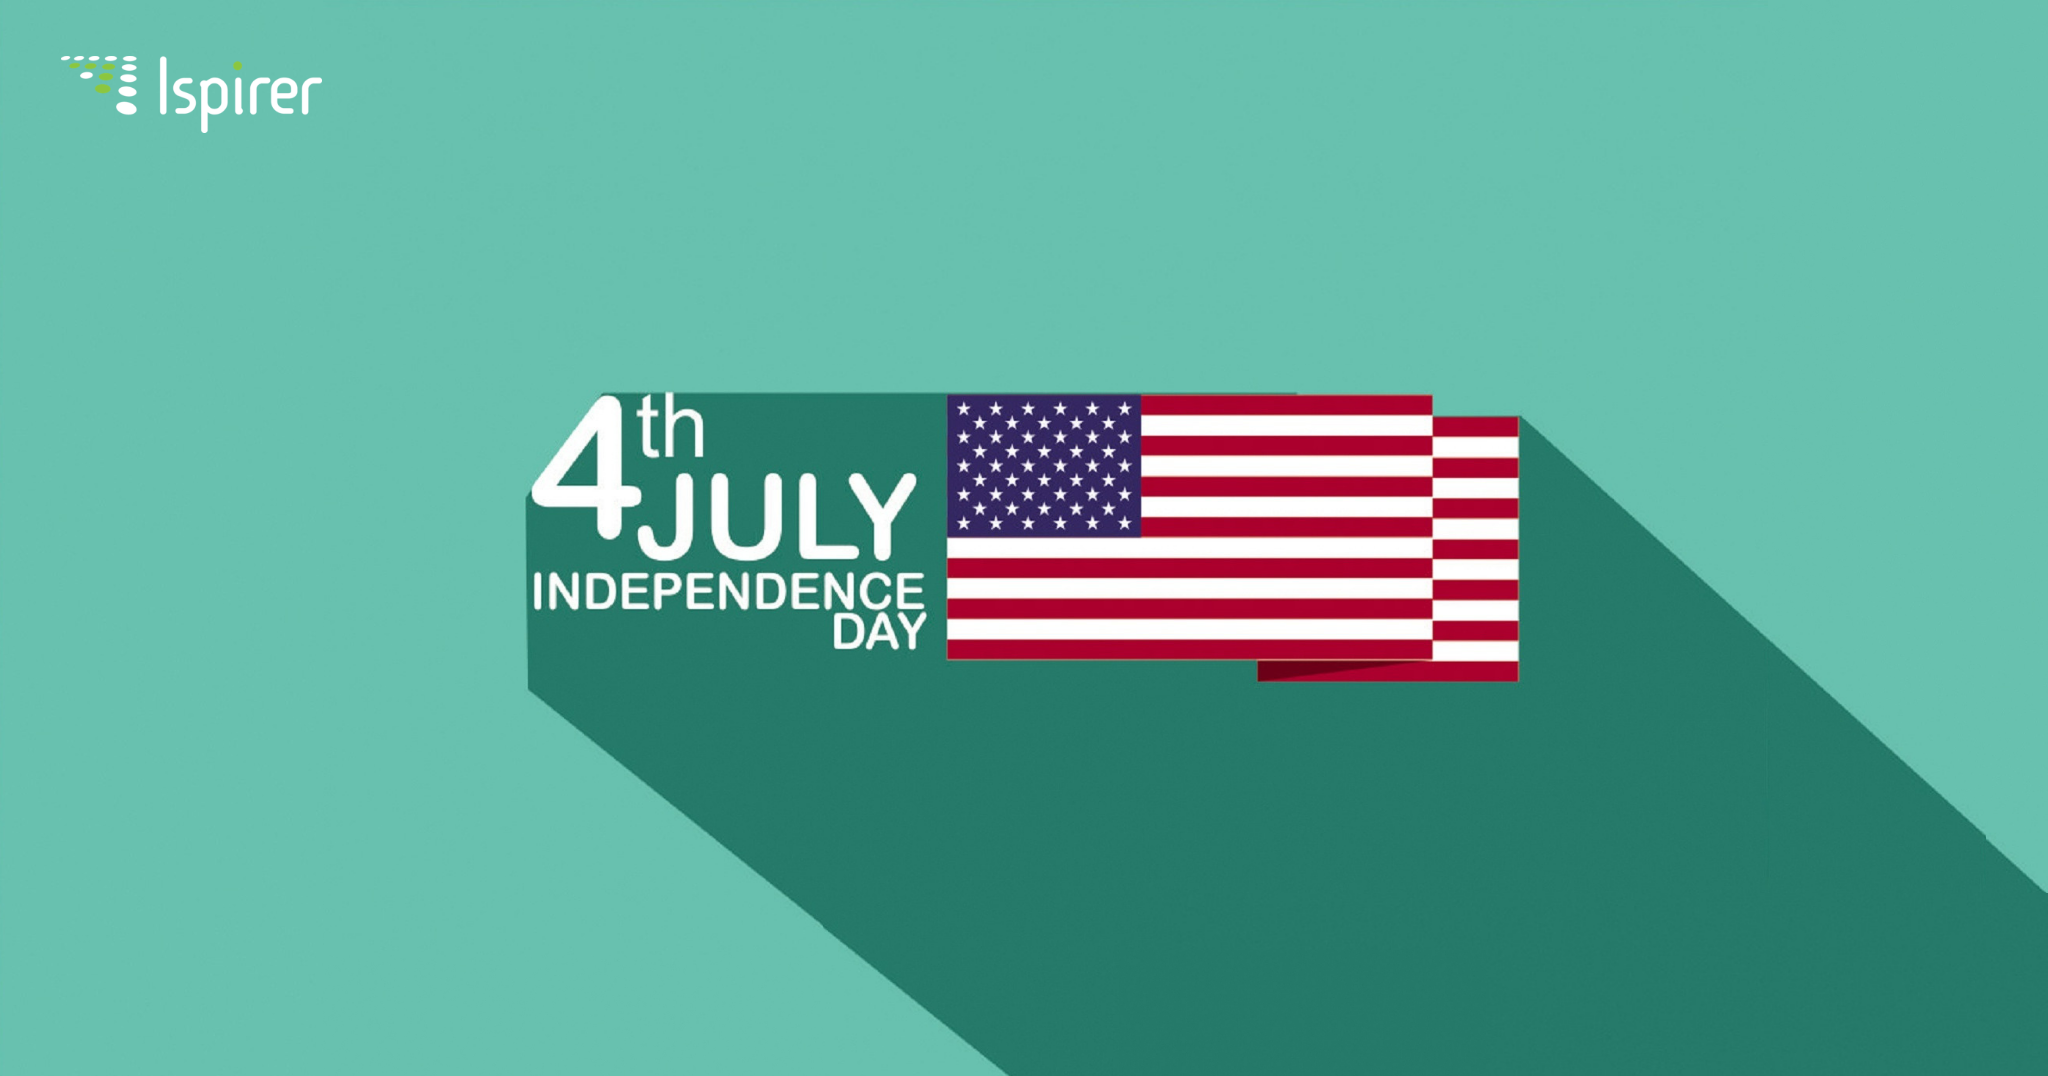 Happy Independence Day to America!